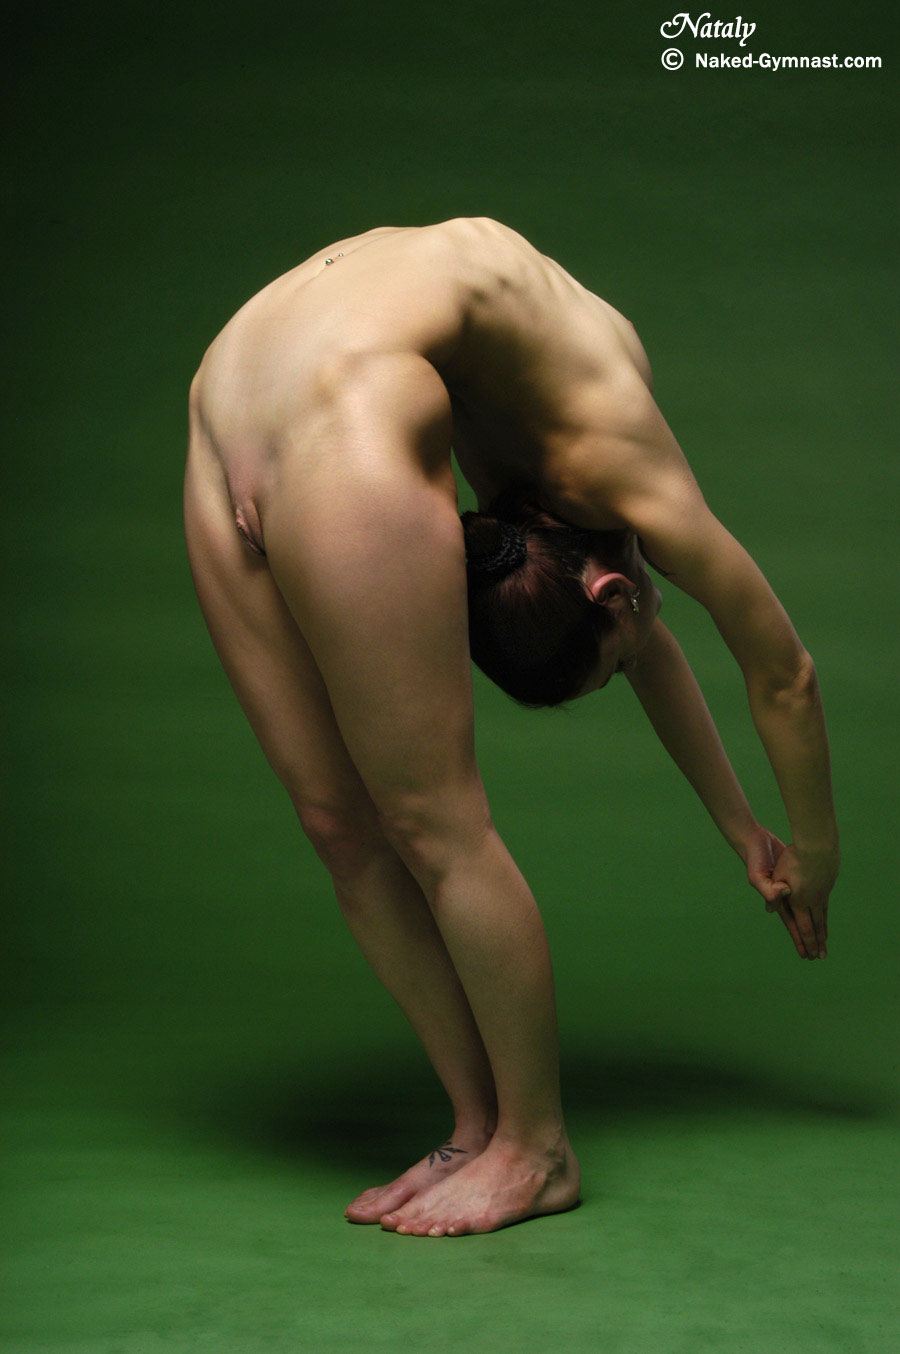 Nude women gymnastics naked gymnast all